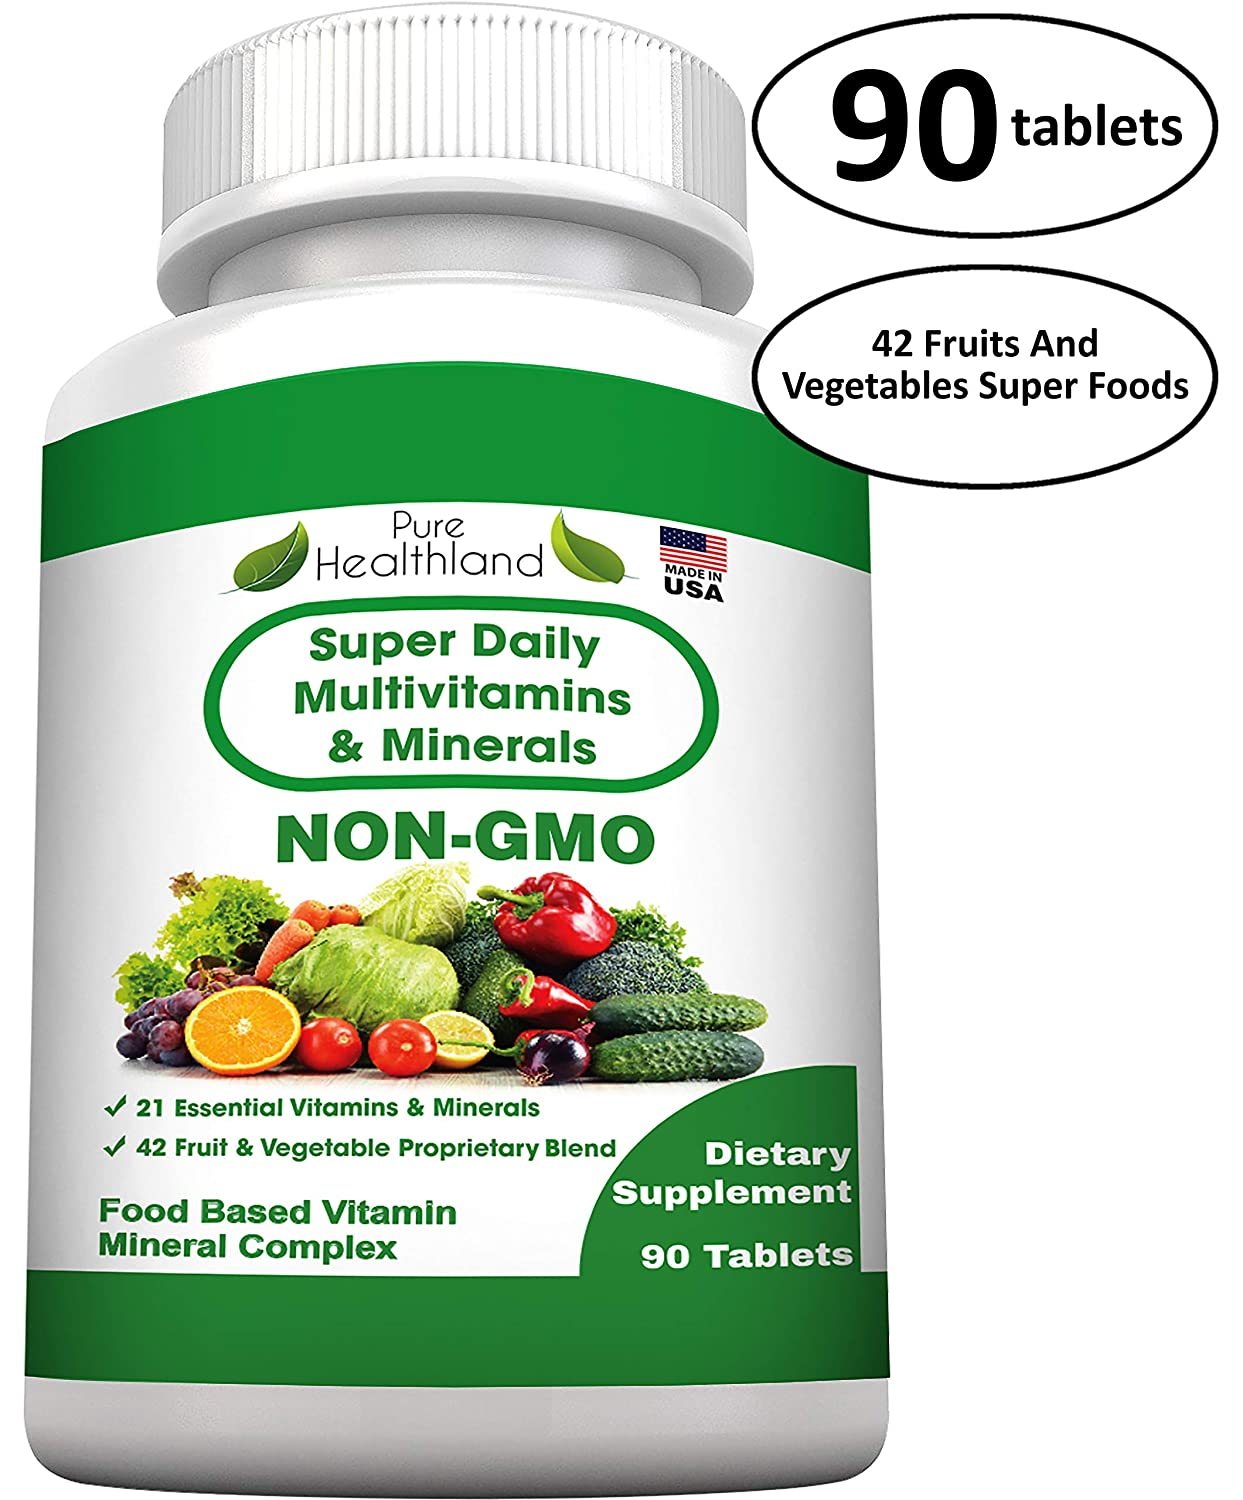 Food Based Super Daily Multivitamin Supplement Non GMO Tablets Best for Adult Men Women Seniors with 42 Natural Fruits Vegetables Blend, 21 Essential Vitamins Minerals. 90 Tablets.